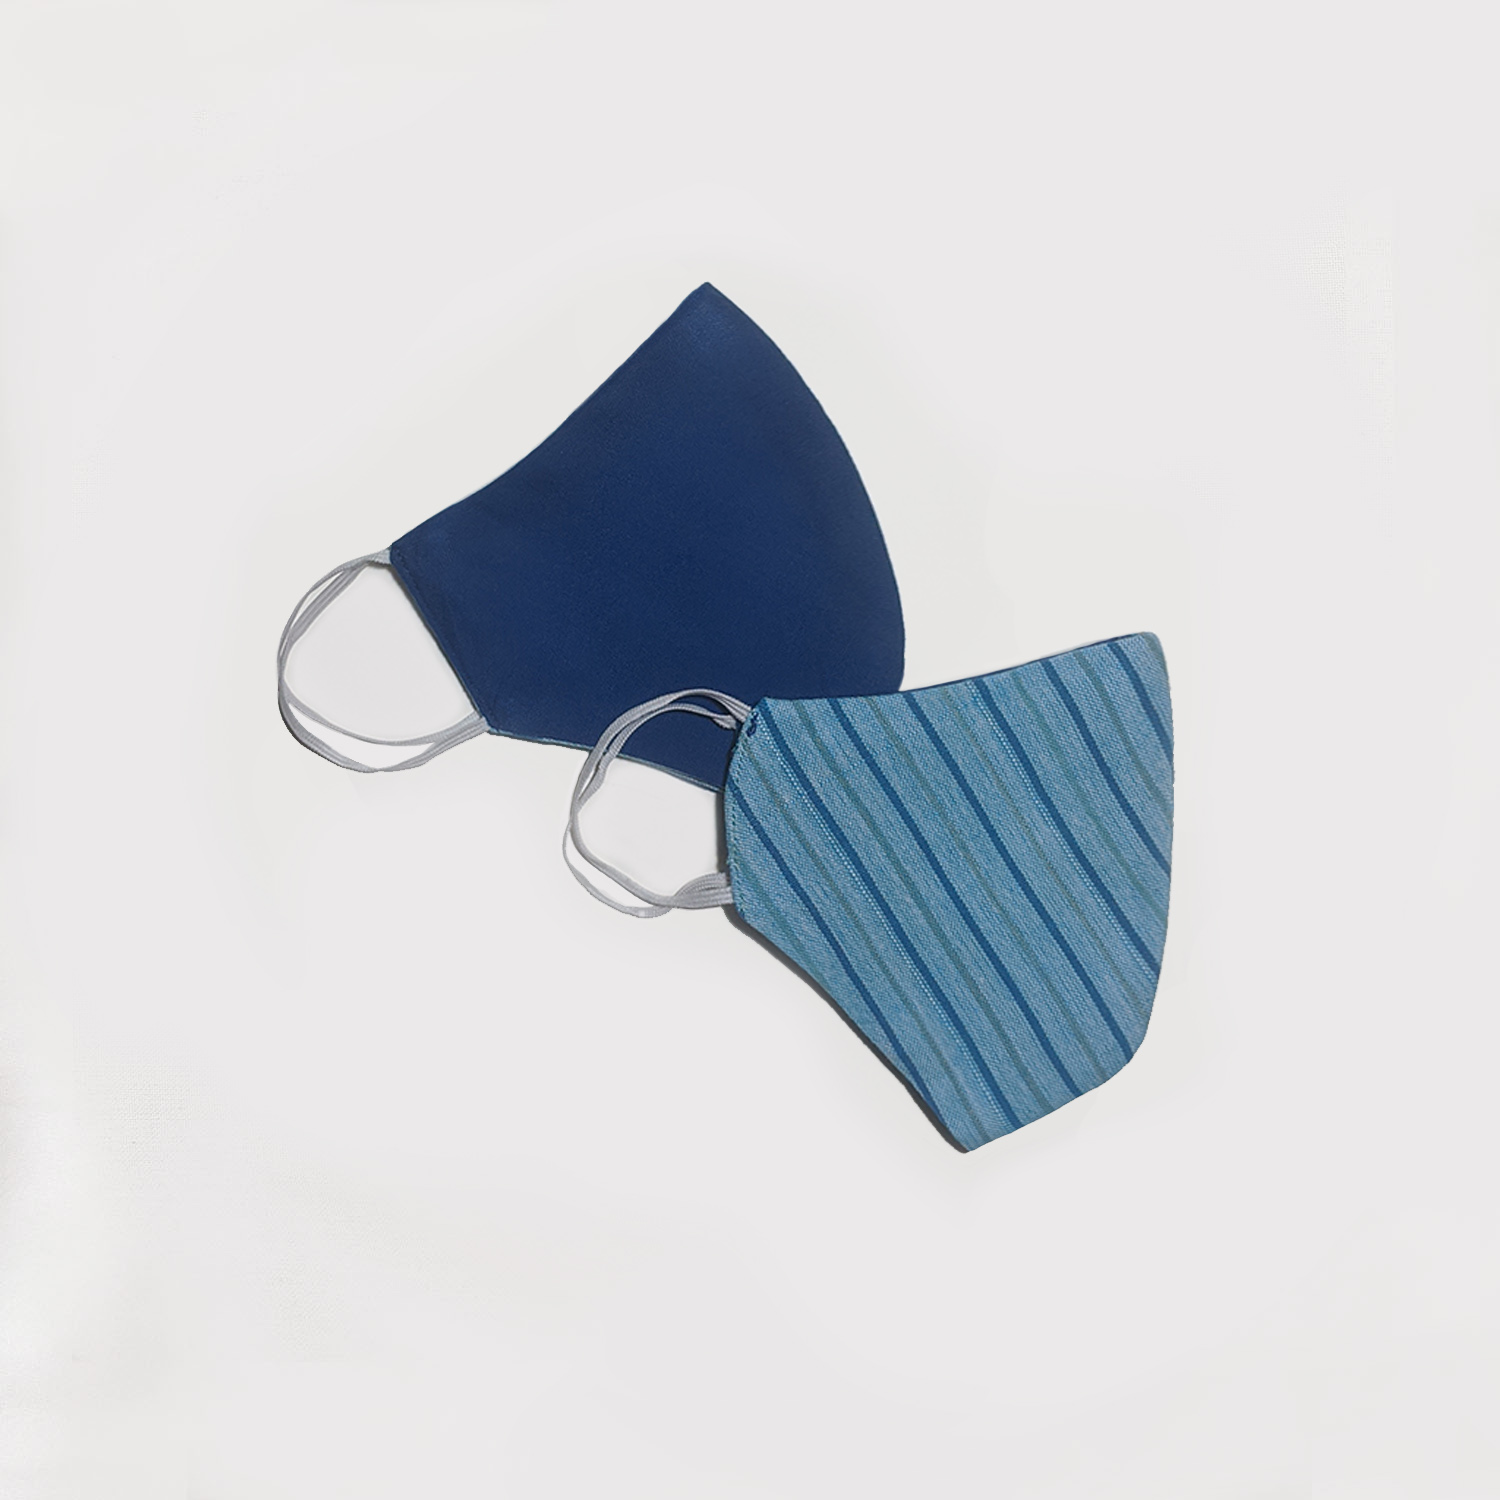 Blue and Light Blue Striped Reversible Face Mask (Set of 2)